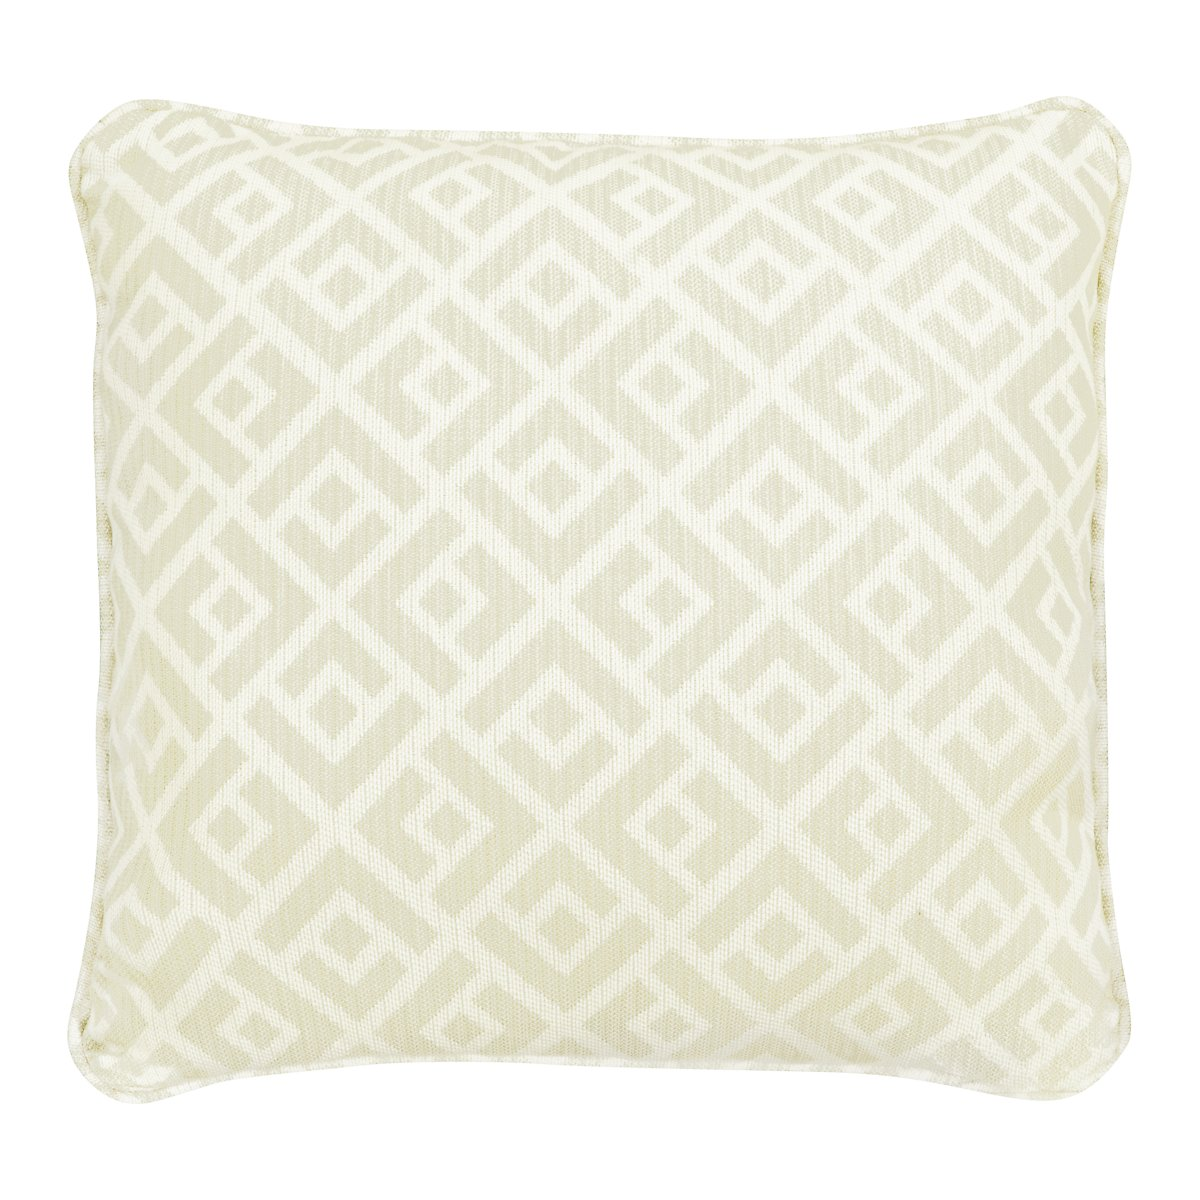 "Chipper Light Green 18"" Accent Pillow"